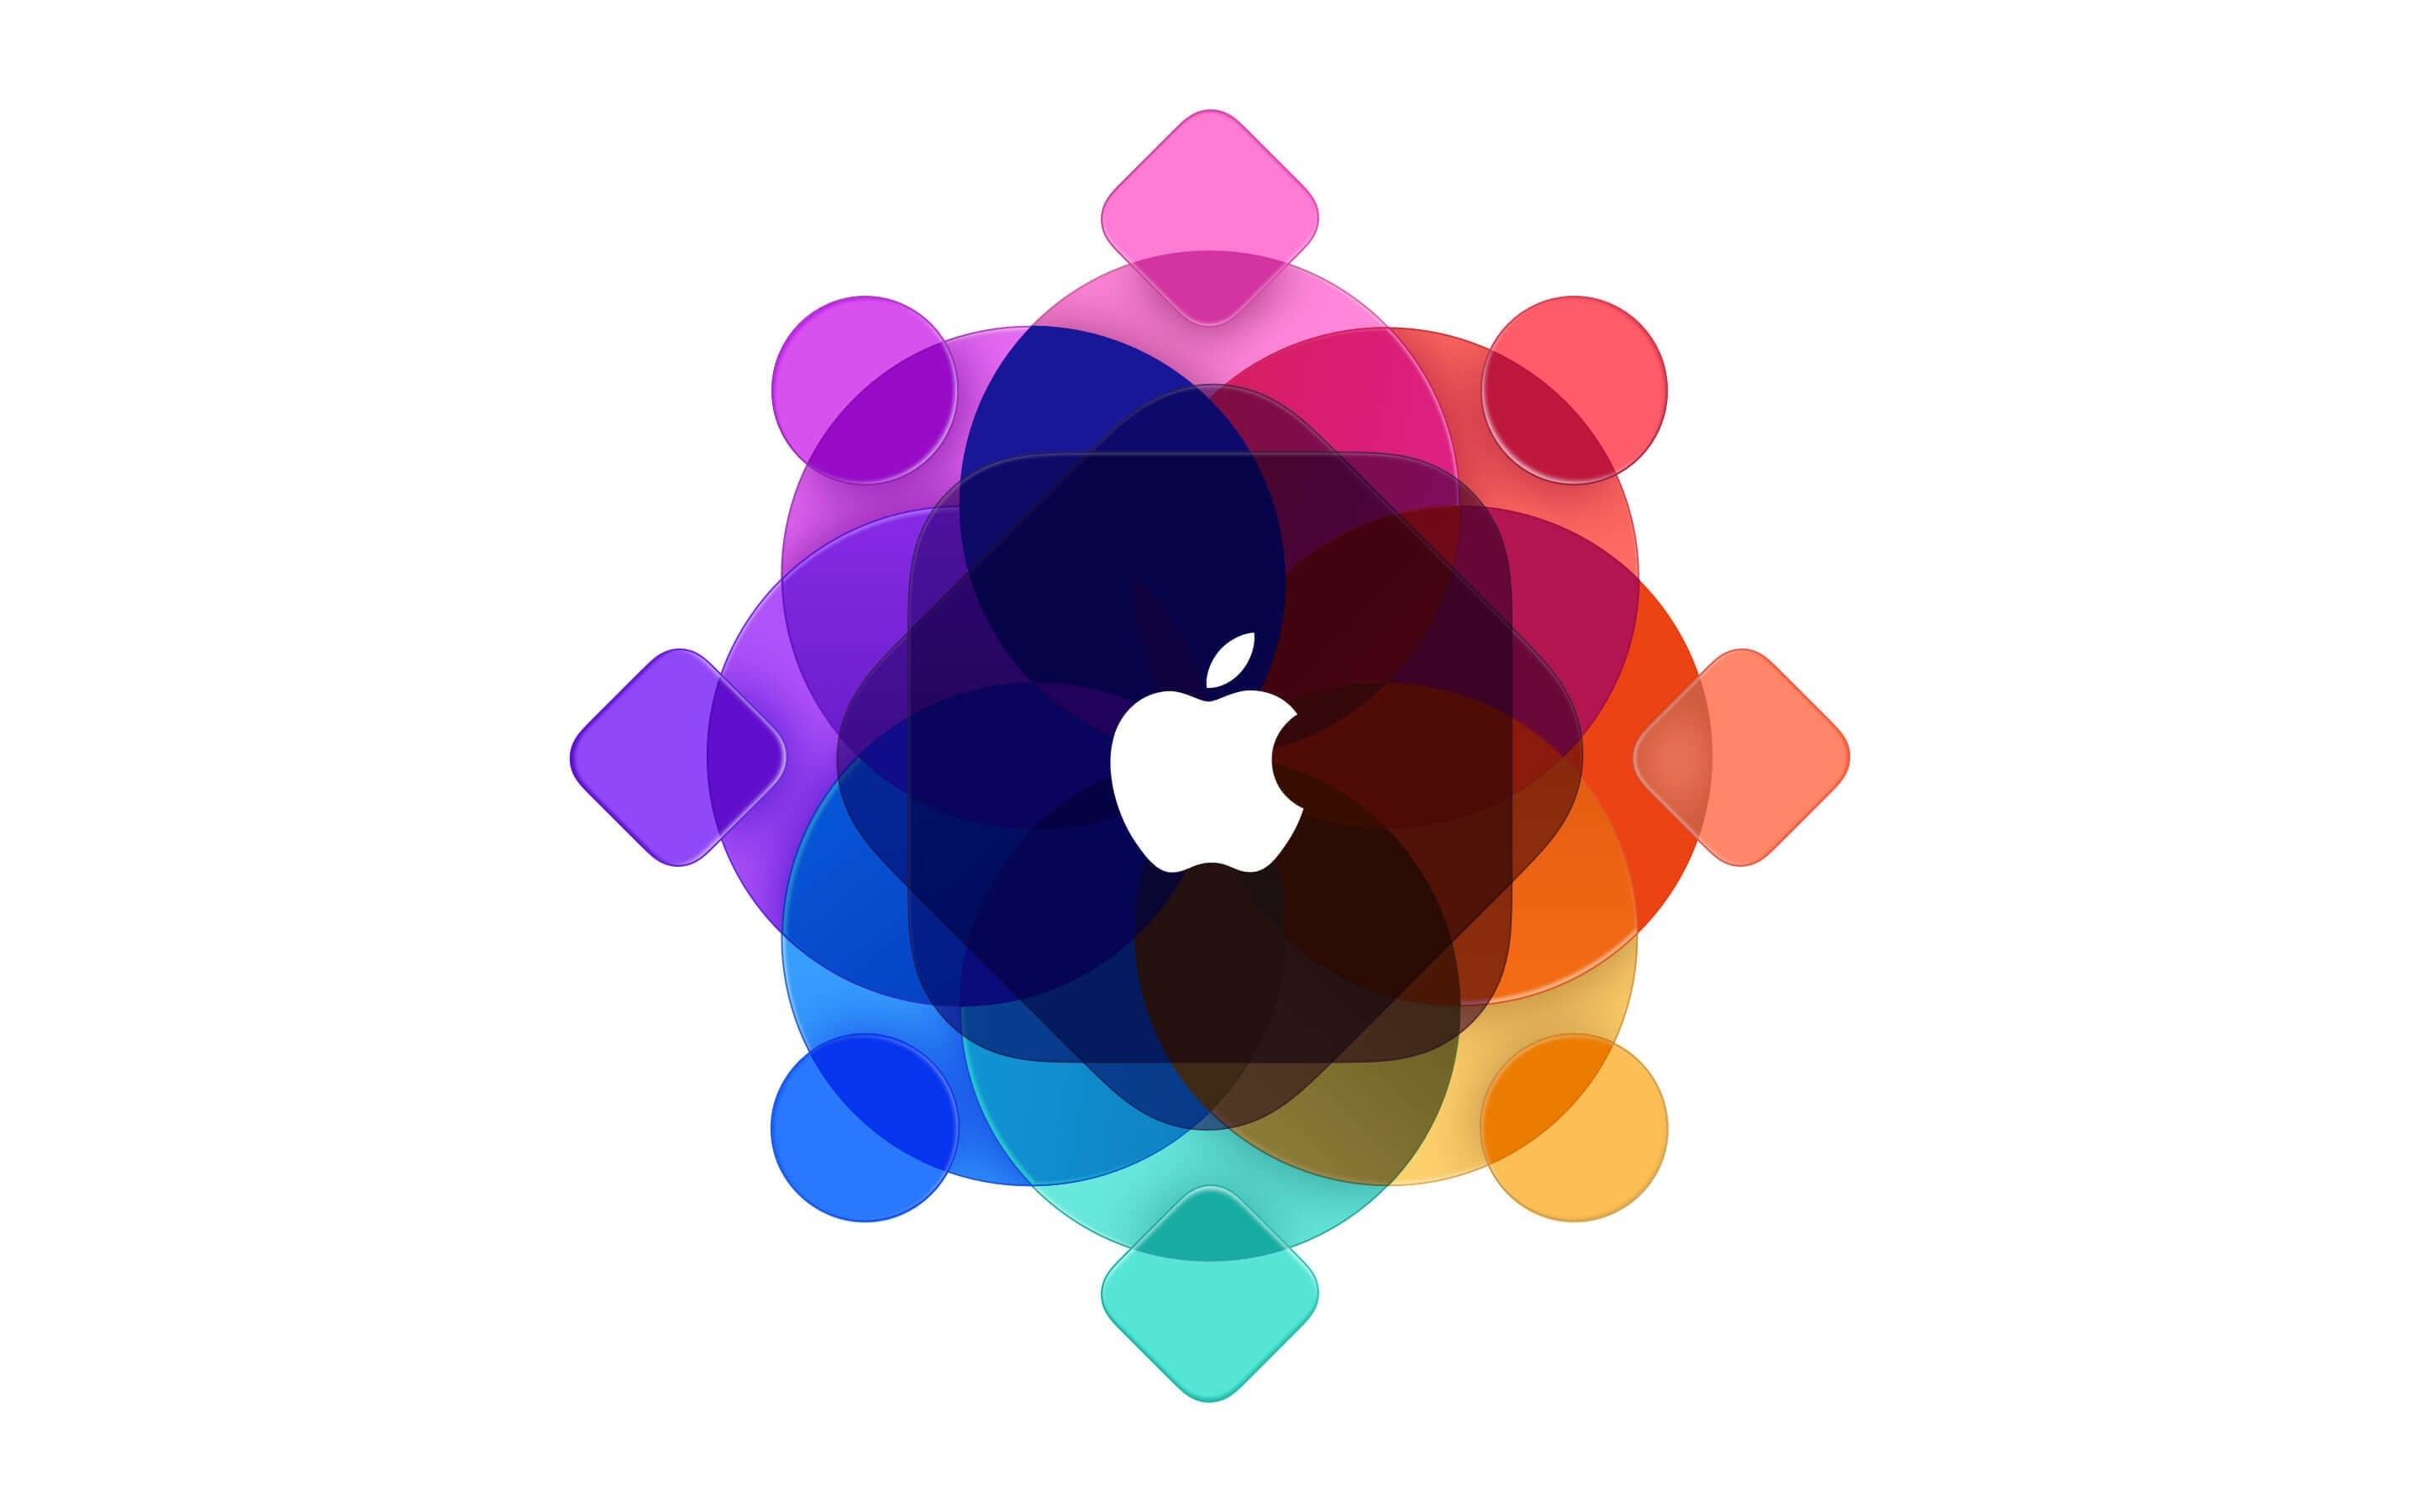 Apple WWDC 2015 Wallpaper for Desktop 2880x1800